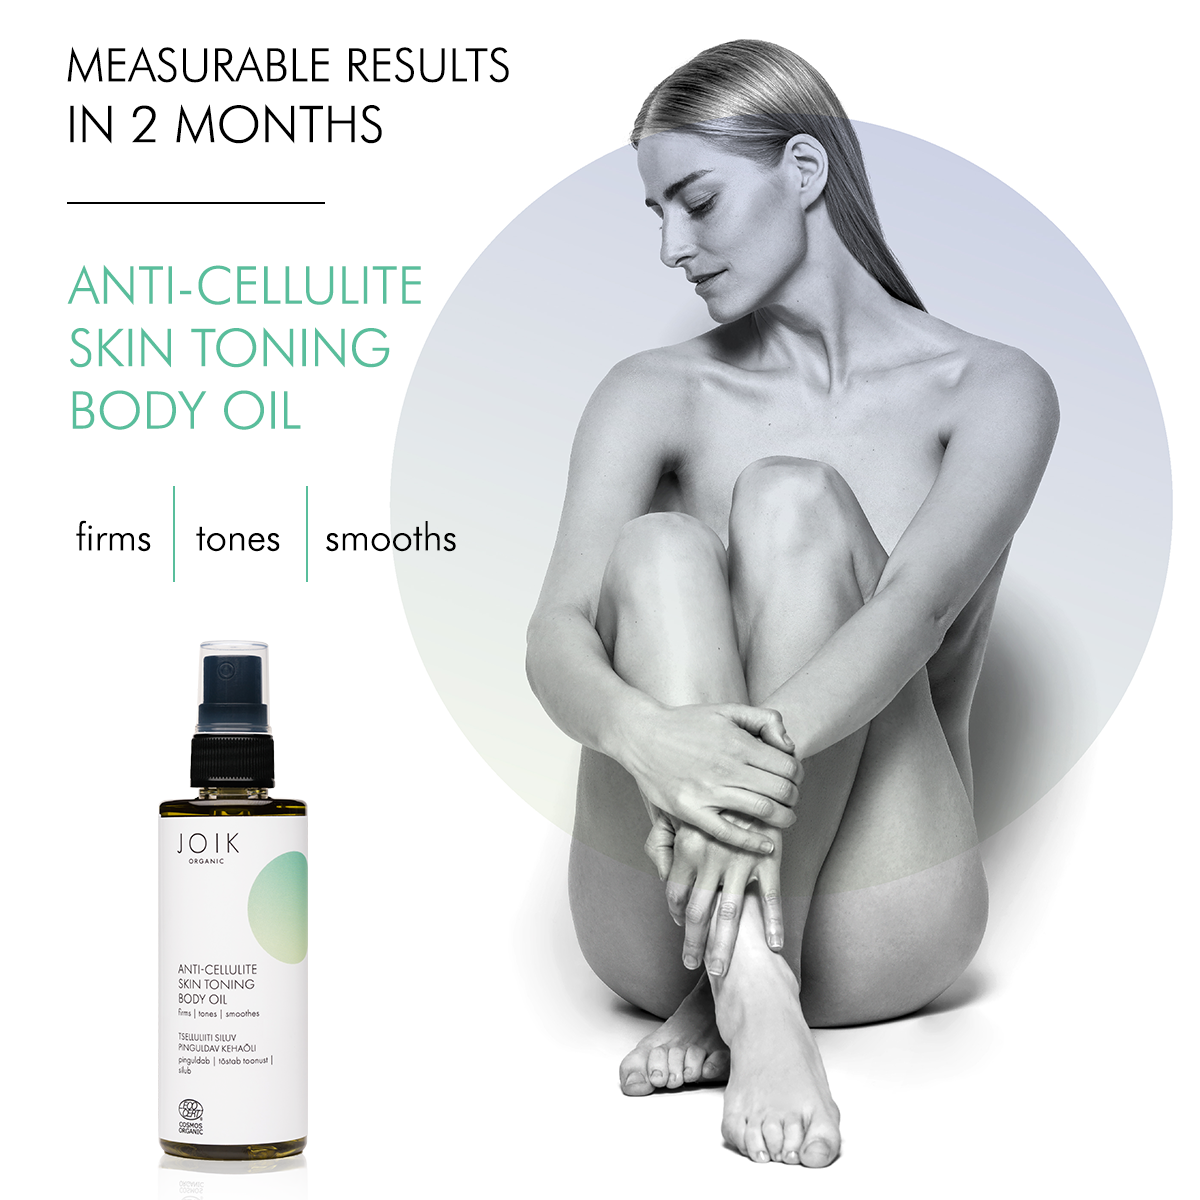 Smoother and firmer skin with anti-cellulite oil. Survey results